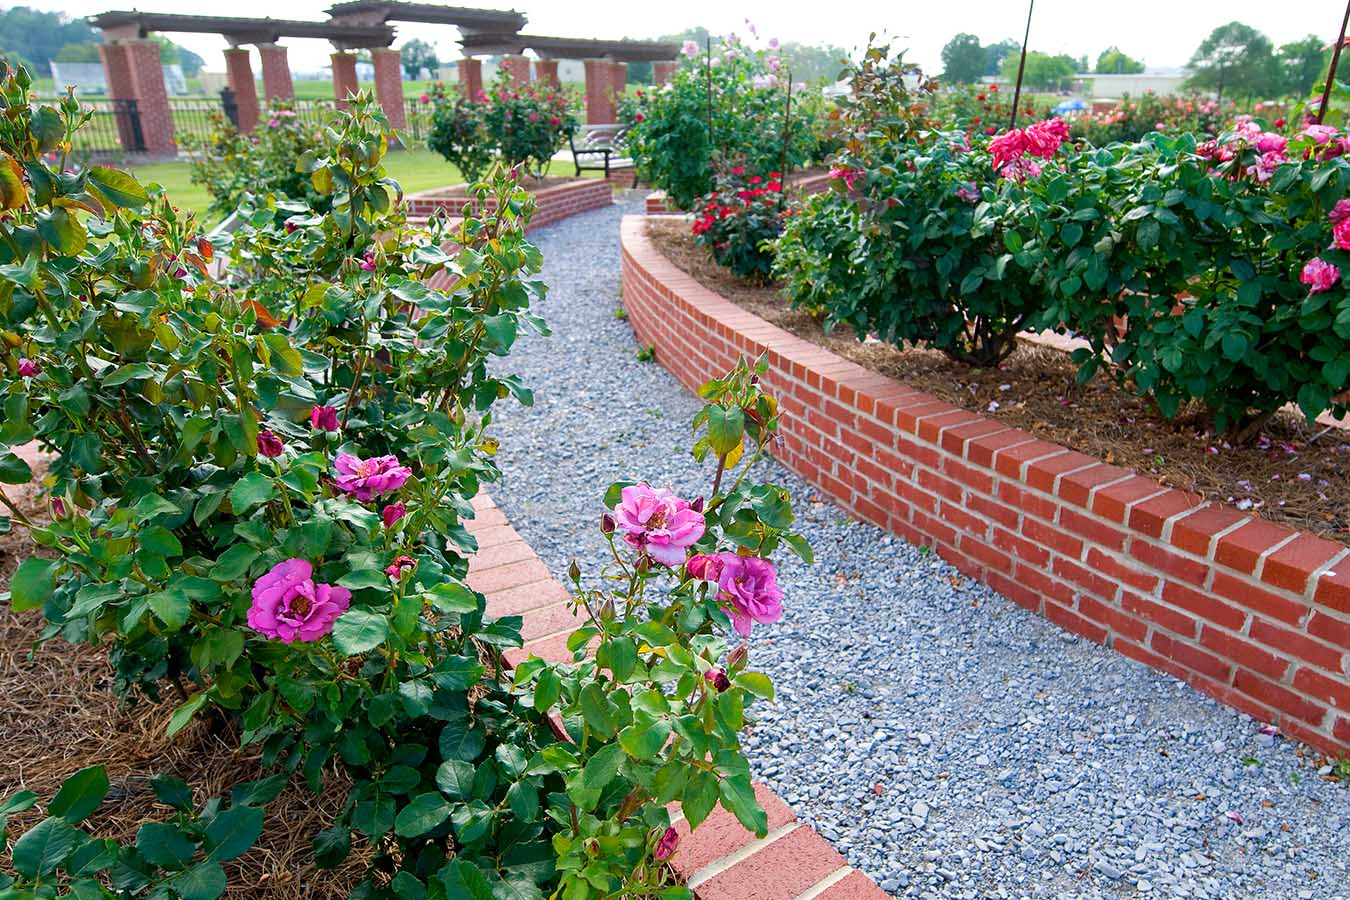 Veterans Memorial Rose Garden Image 3